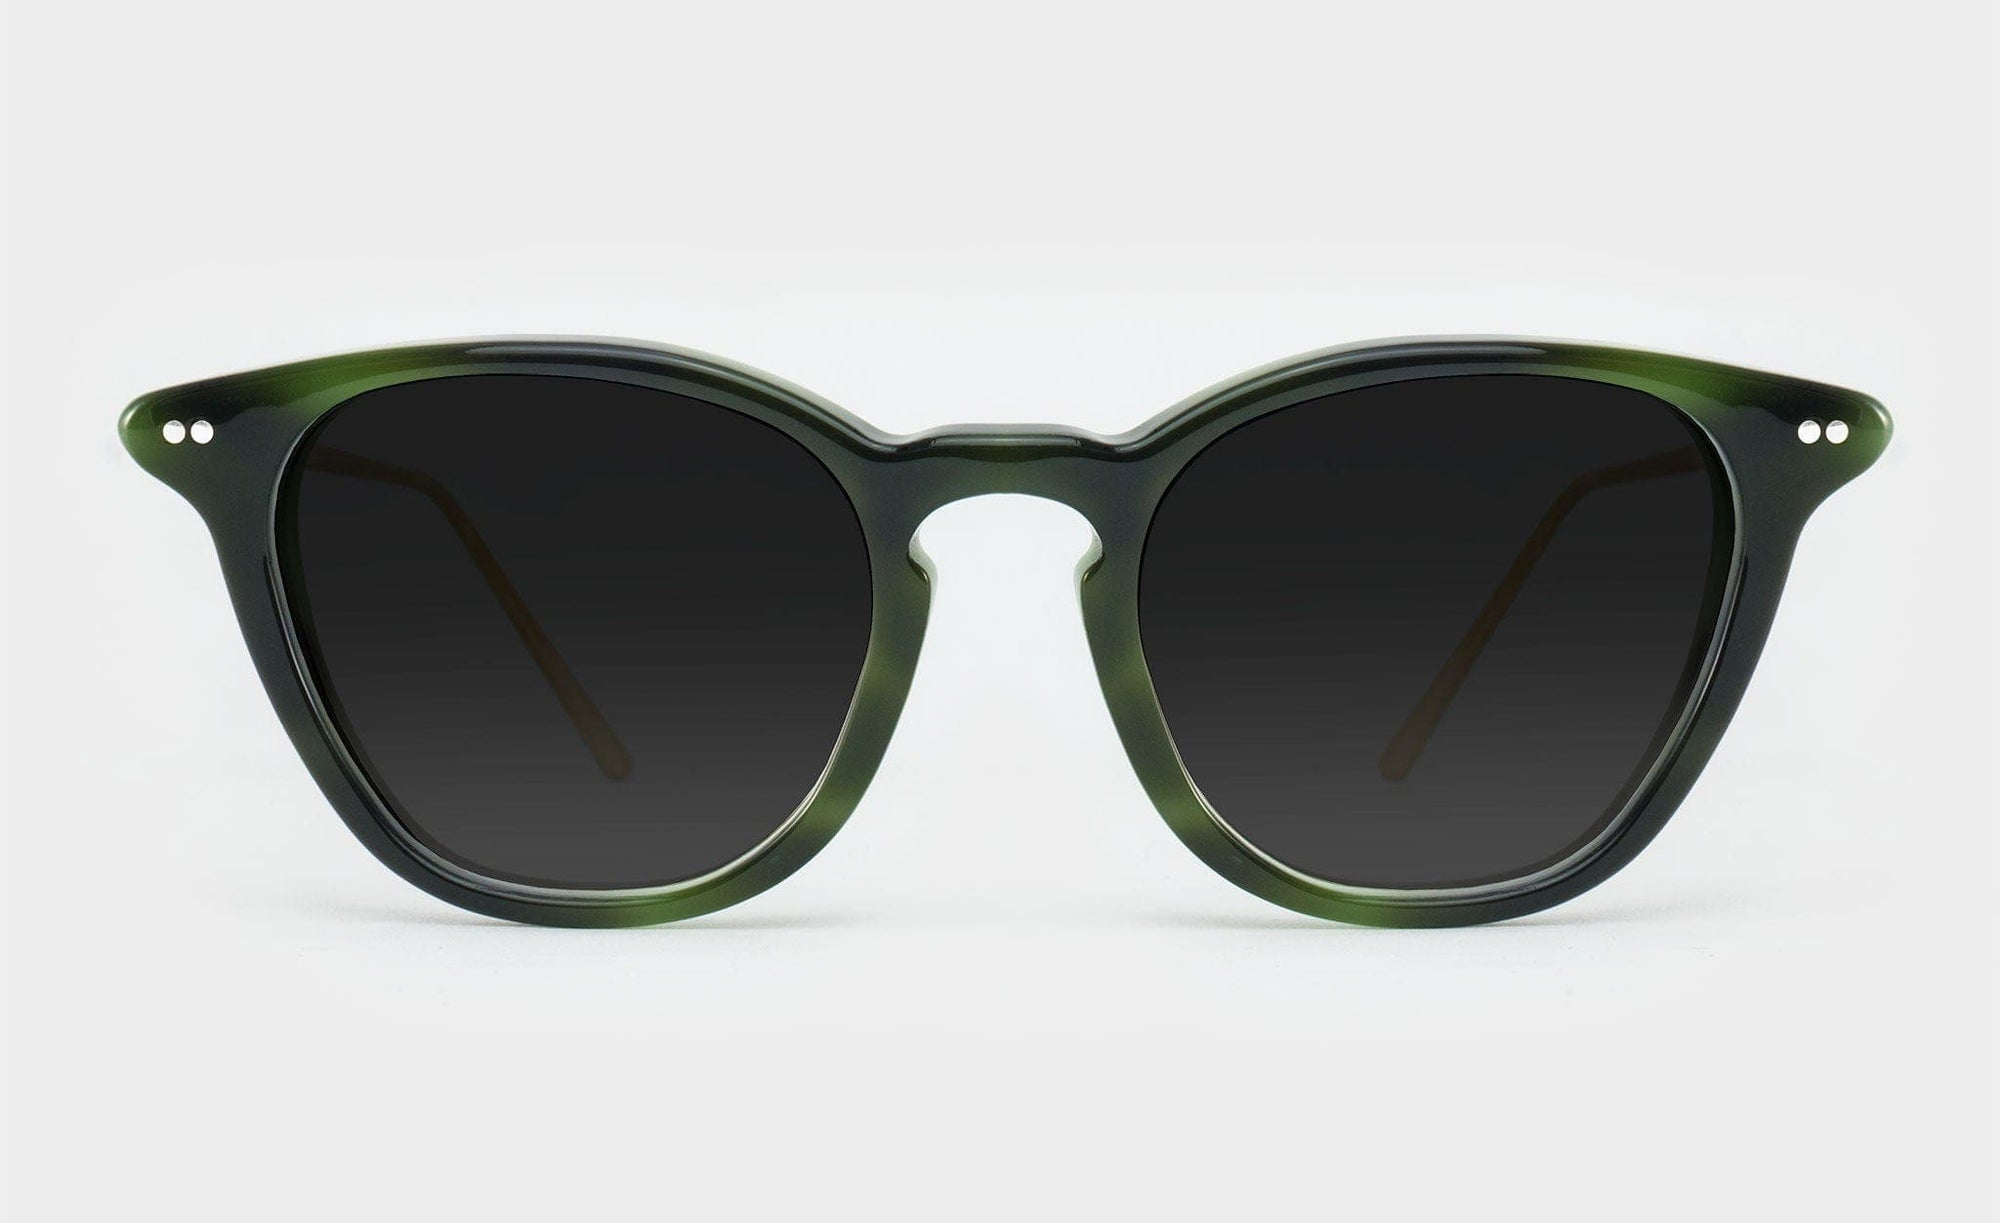 Wayfarer style polarised sunglasses frame